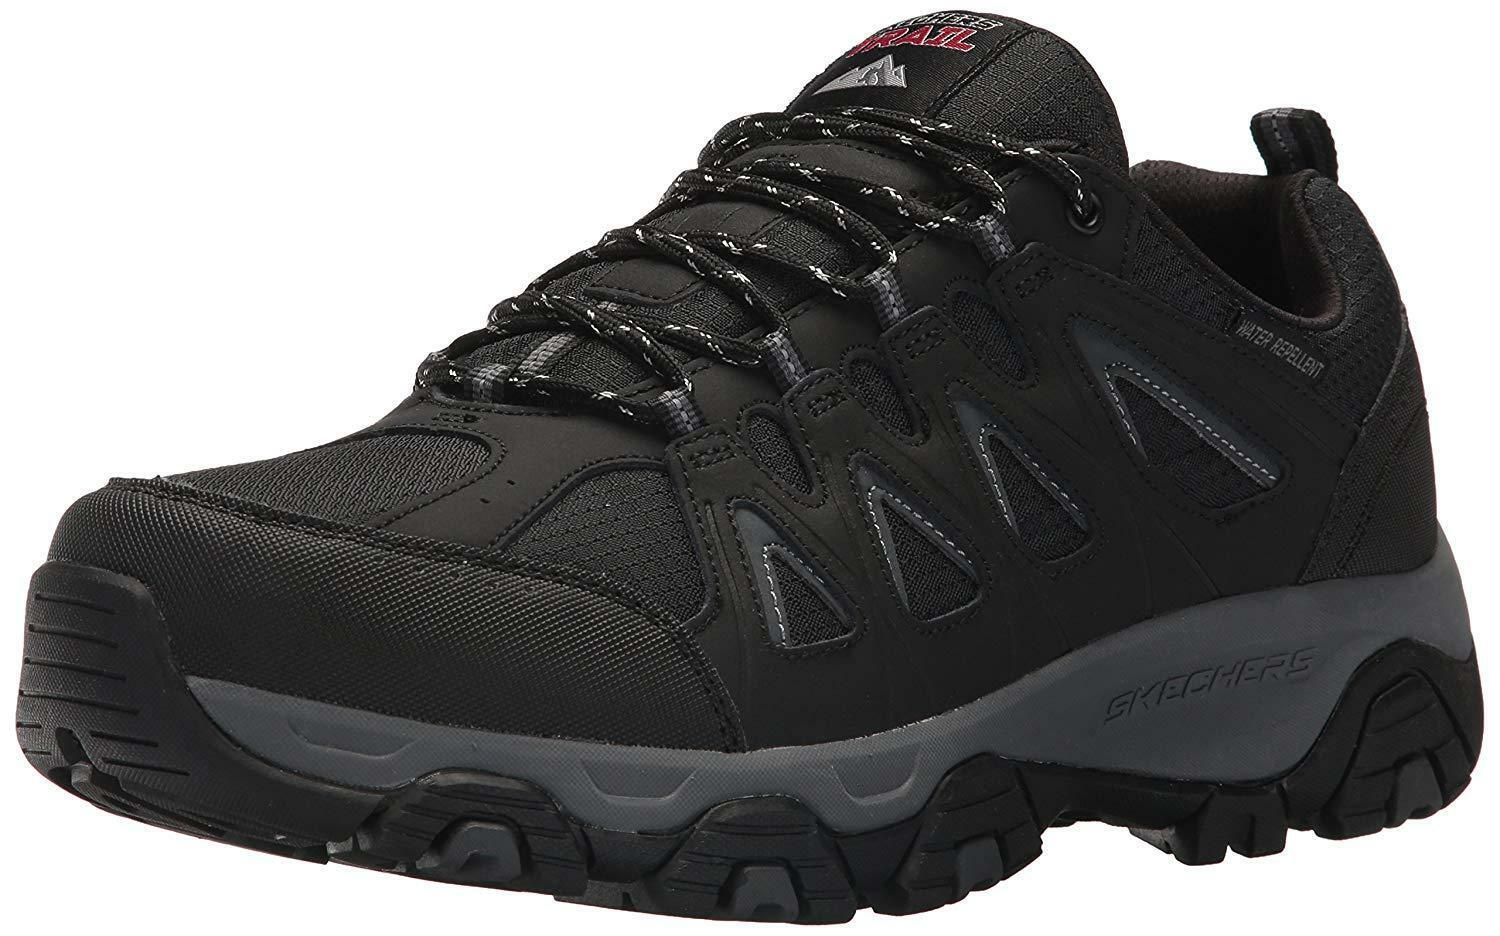 Skechers Men's Terrabite Oxford Trail Walking Hiking Shoe image 9